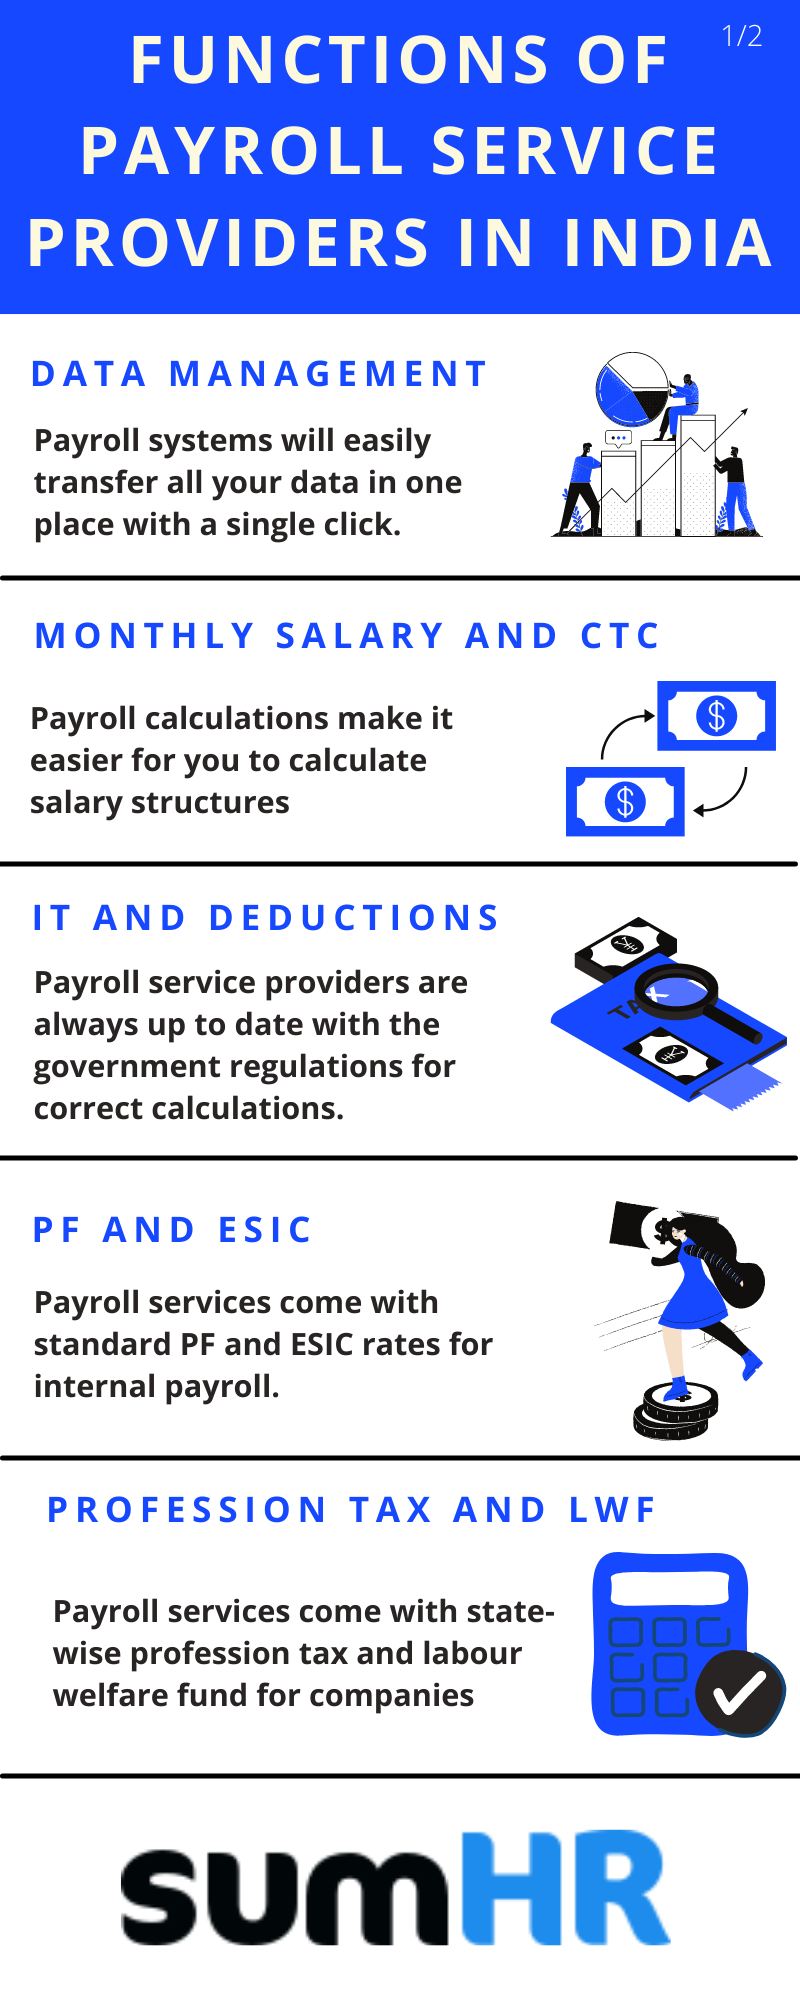 Functions of payroll service providers in India 1